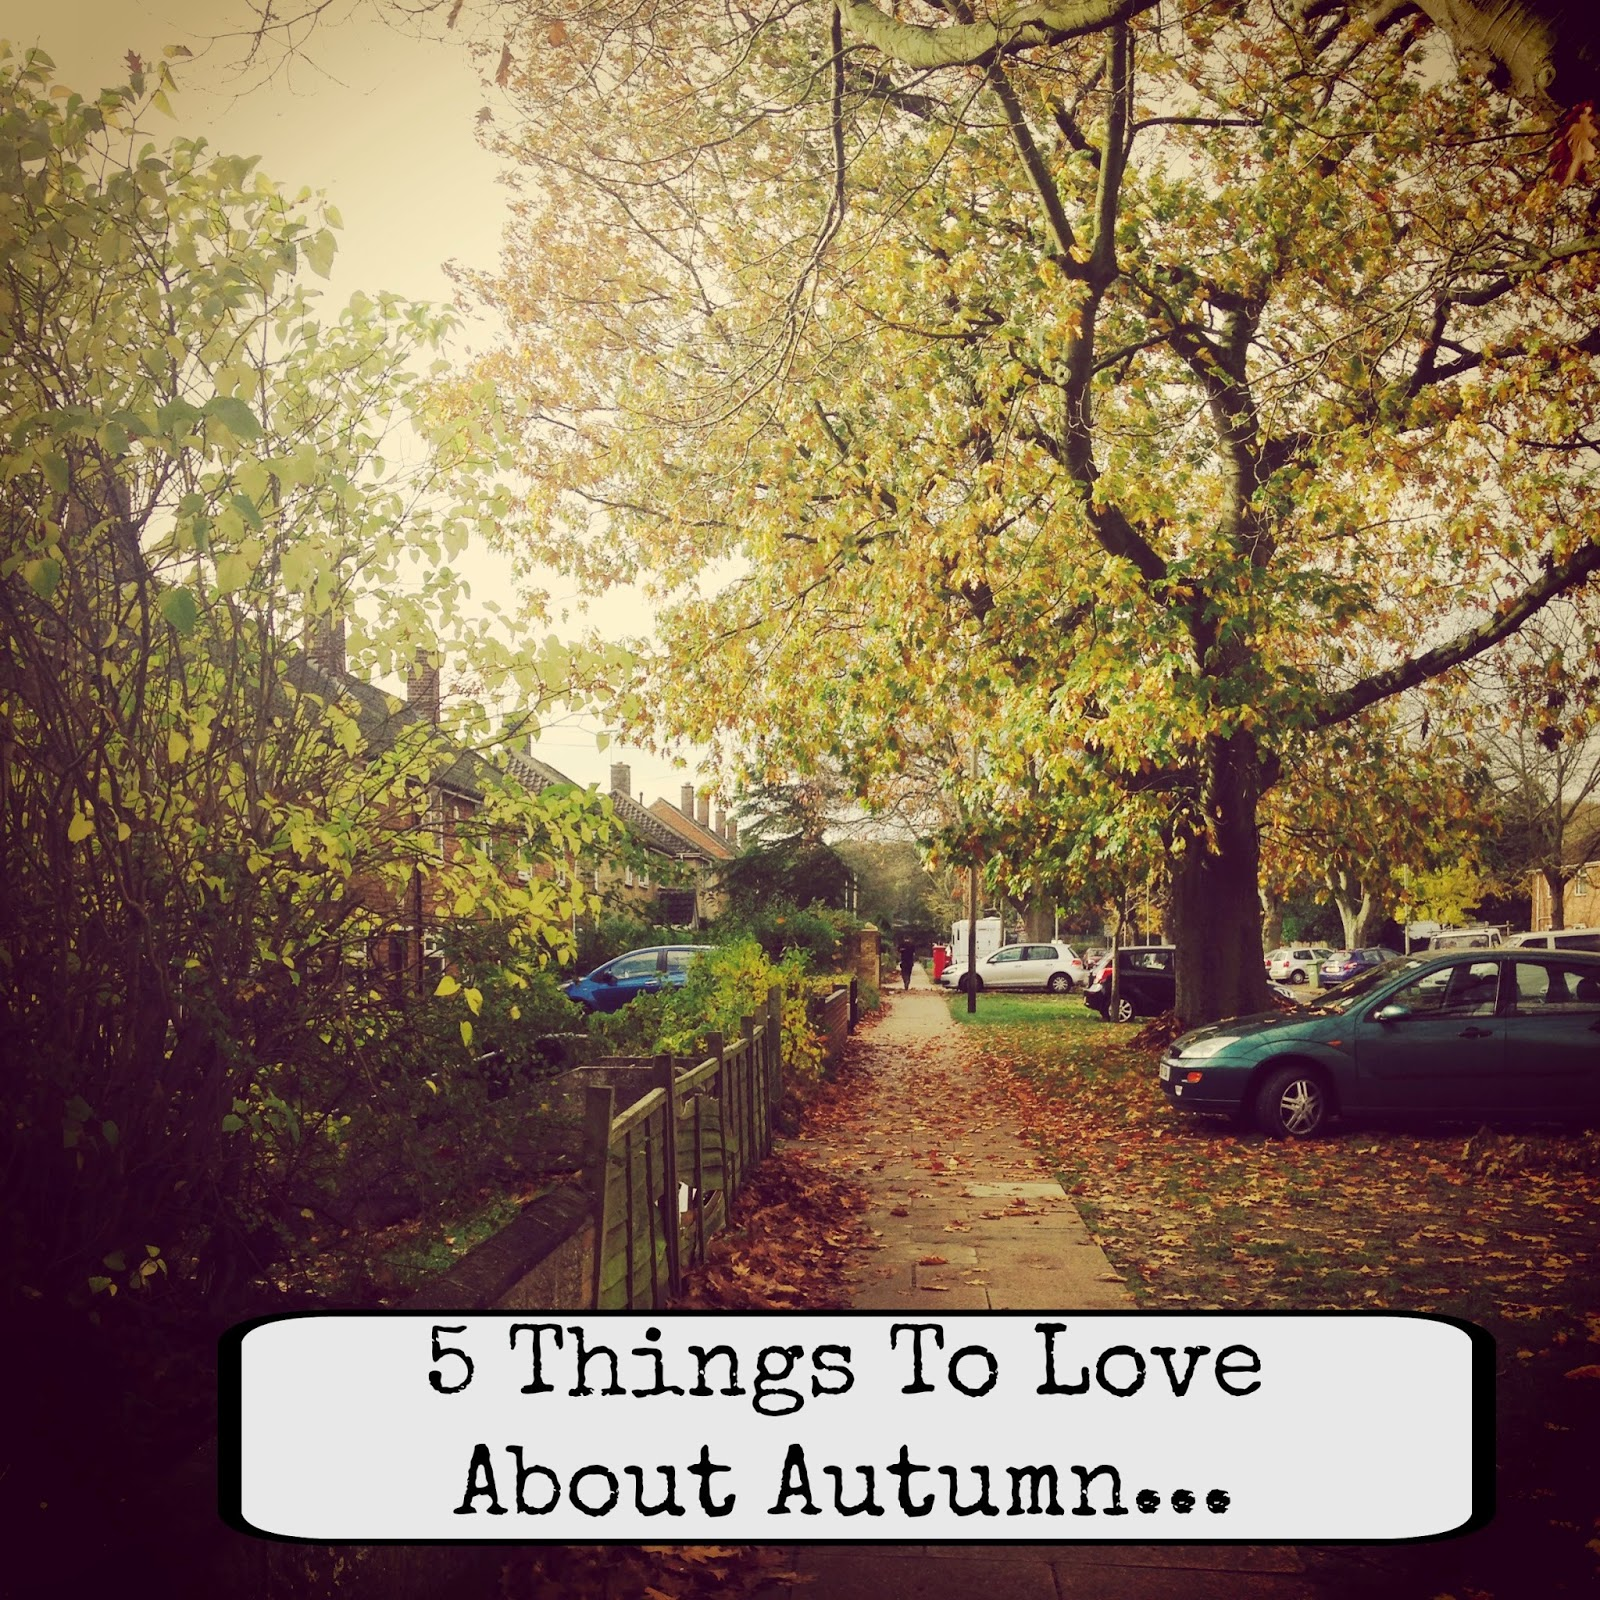 Five things to love about autumn